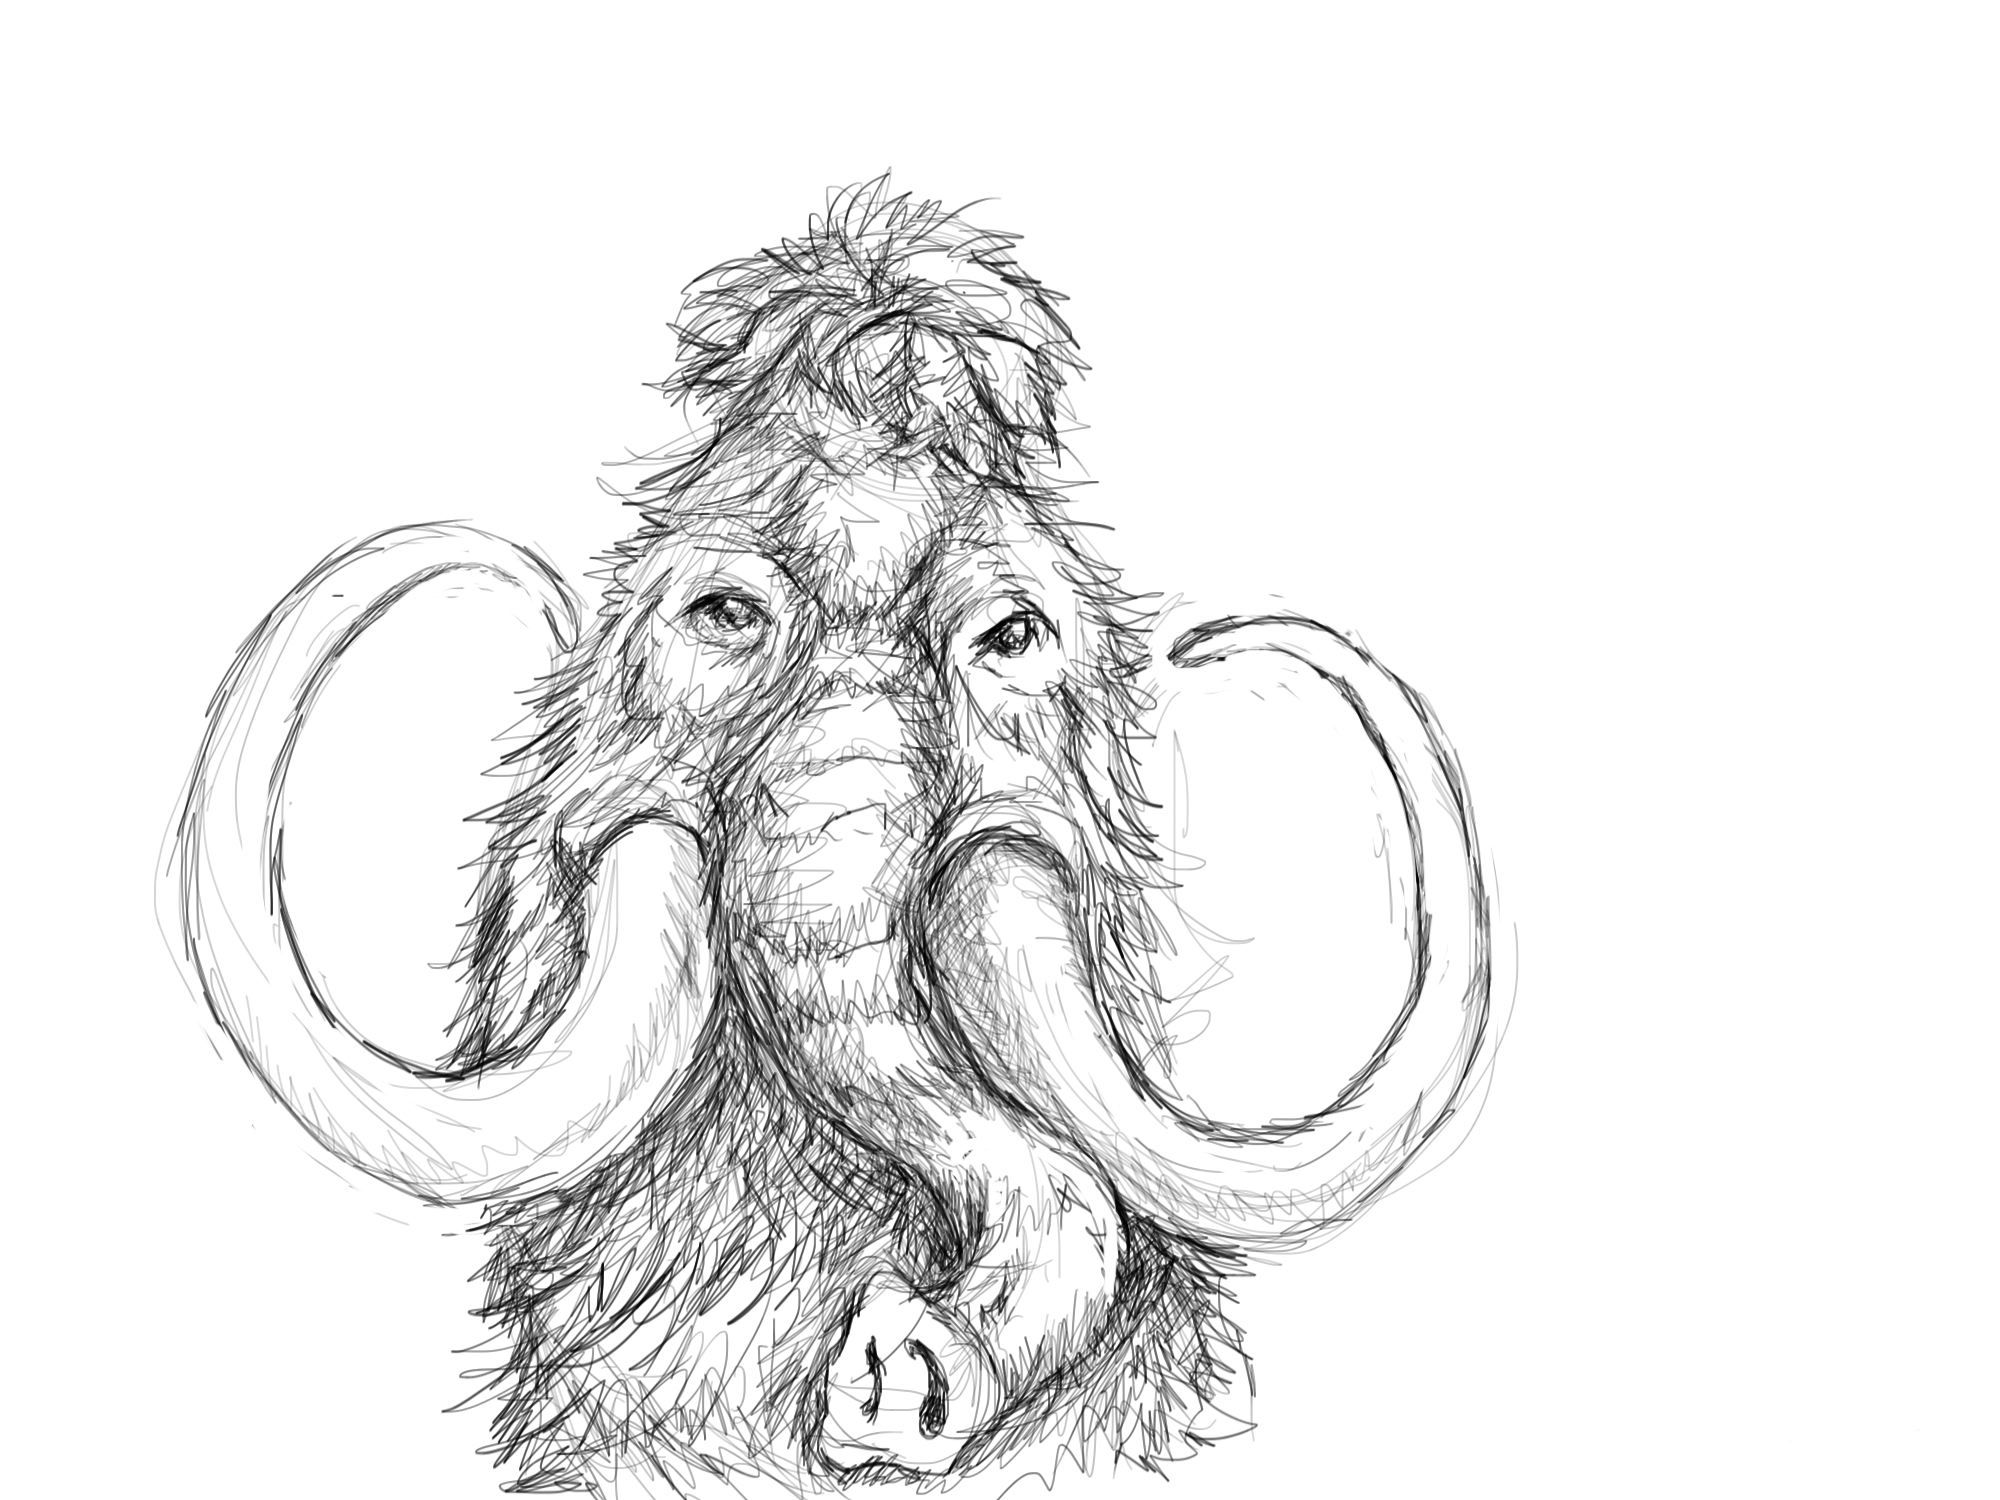 2000x1500 Wooly Mammoth 10,000 Bad Drawings